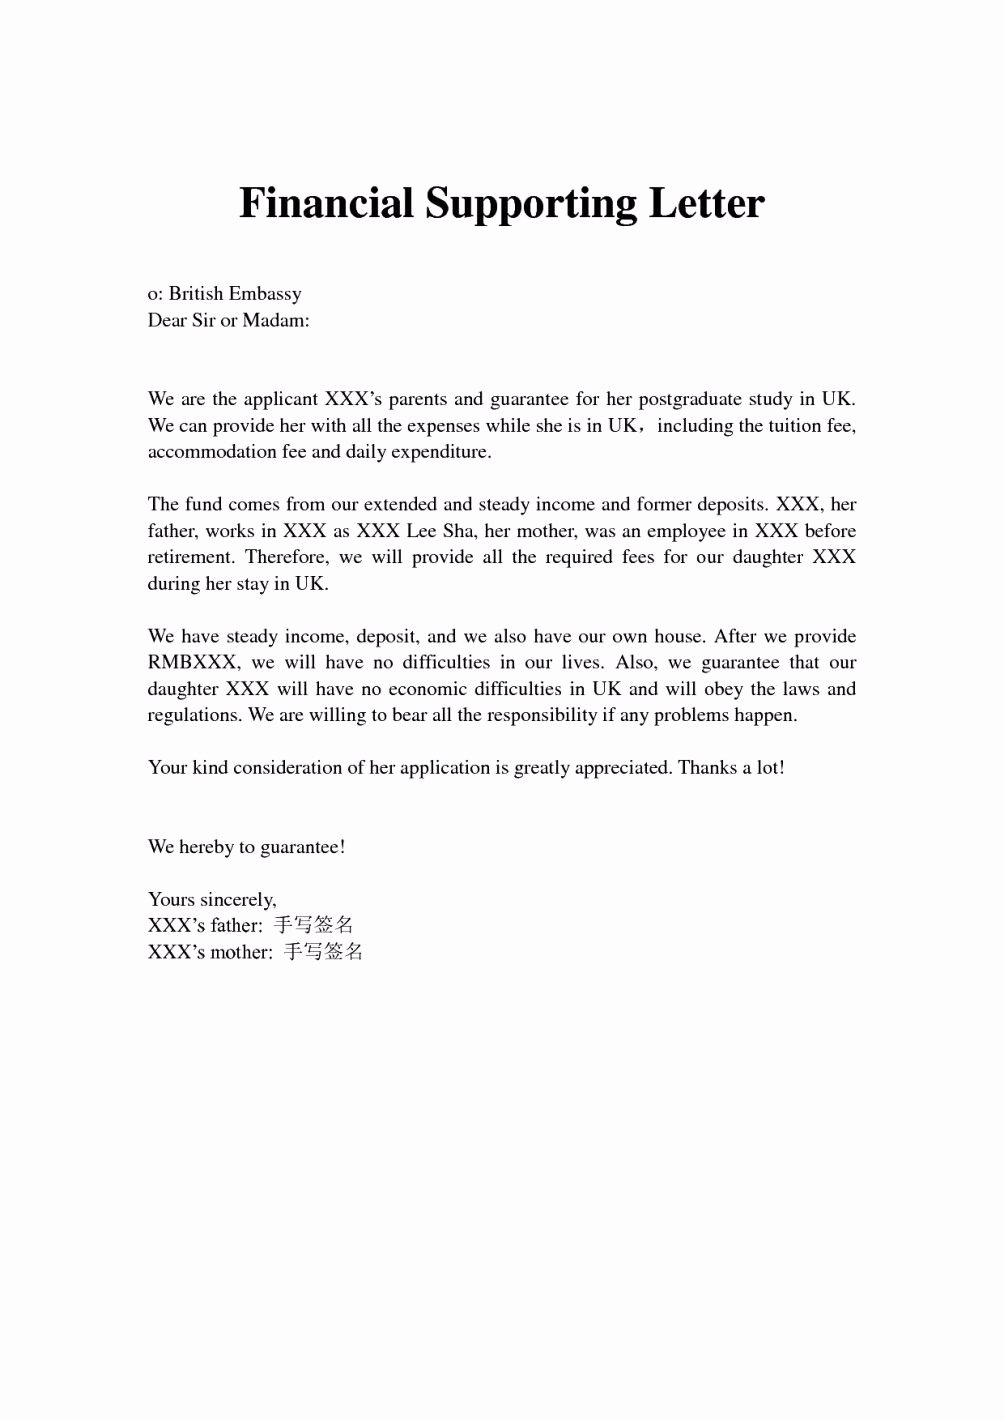 Letter Of Support Templates Best Of Financial Support Letter From Parents Letter